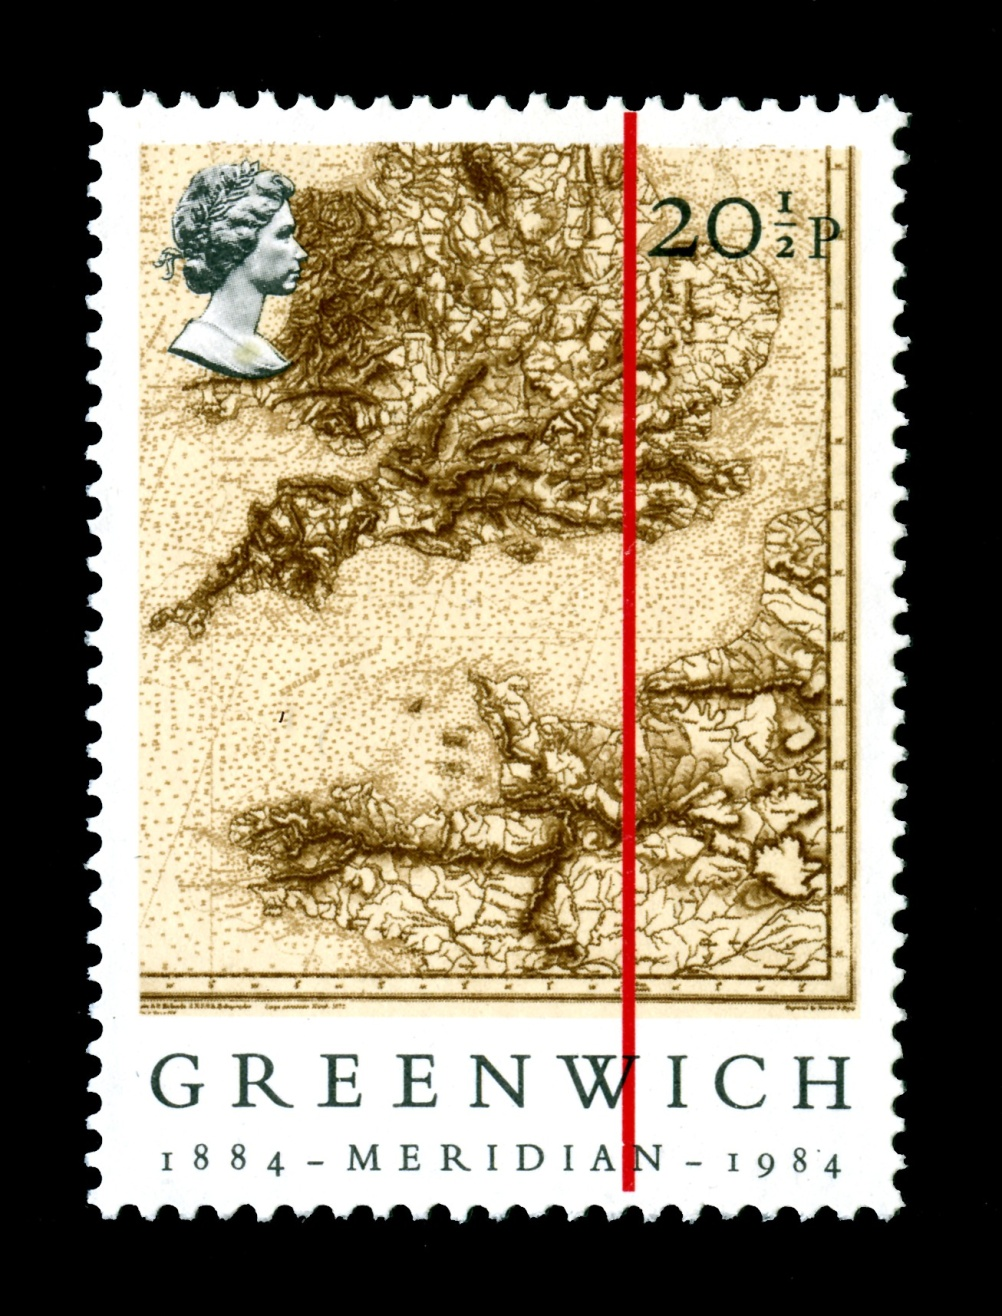 Special Stamps 50th anniversary Royal Mail British Greenwich Meridian